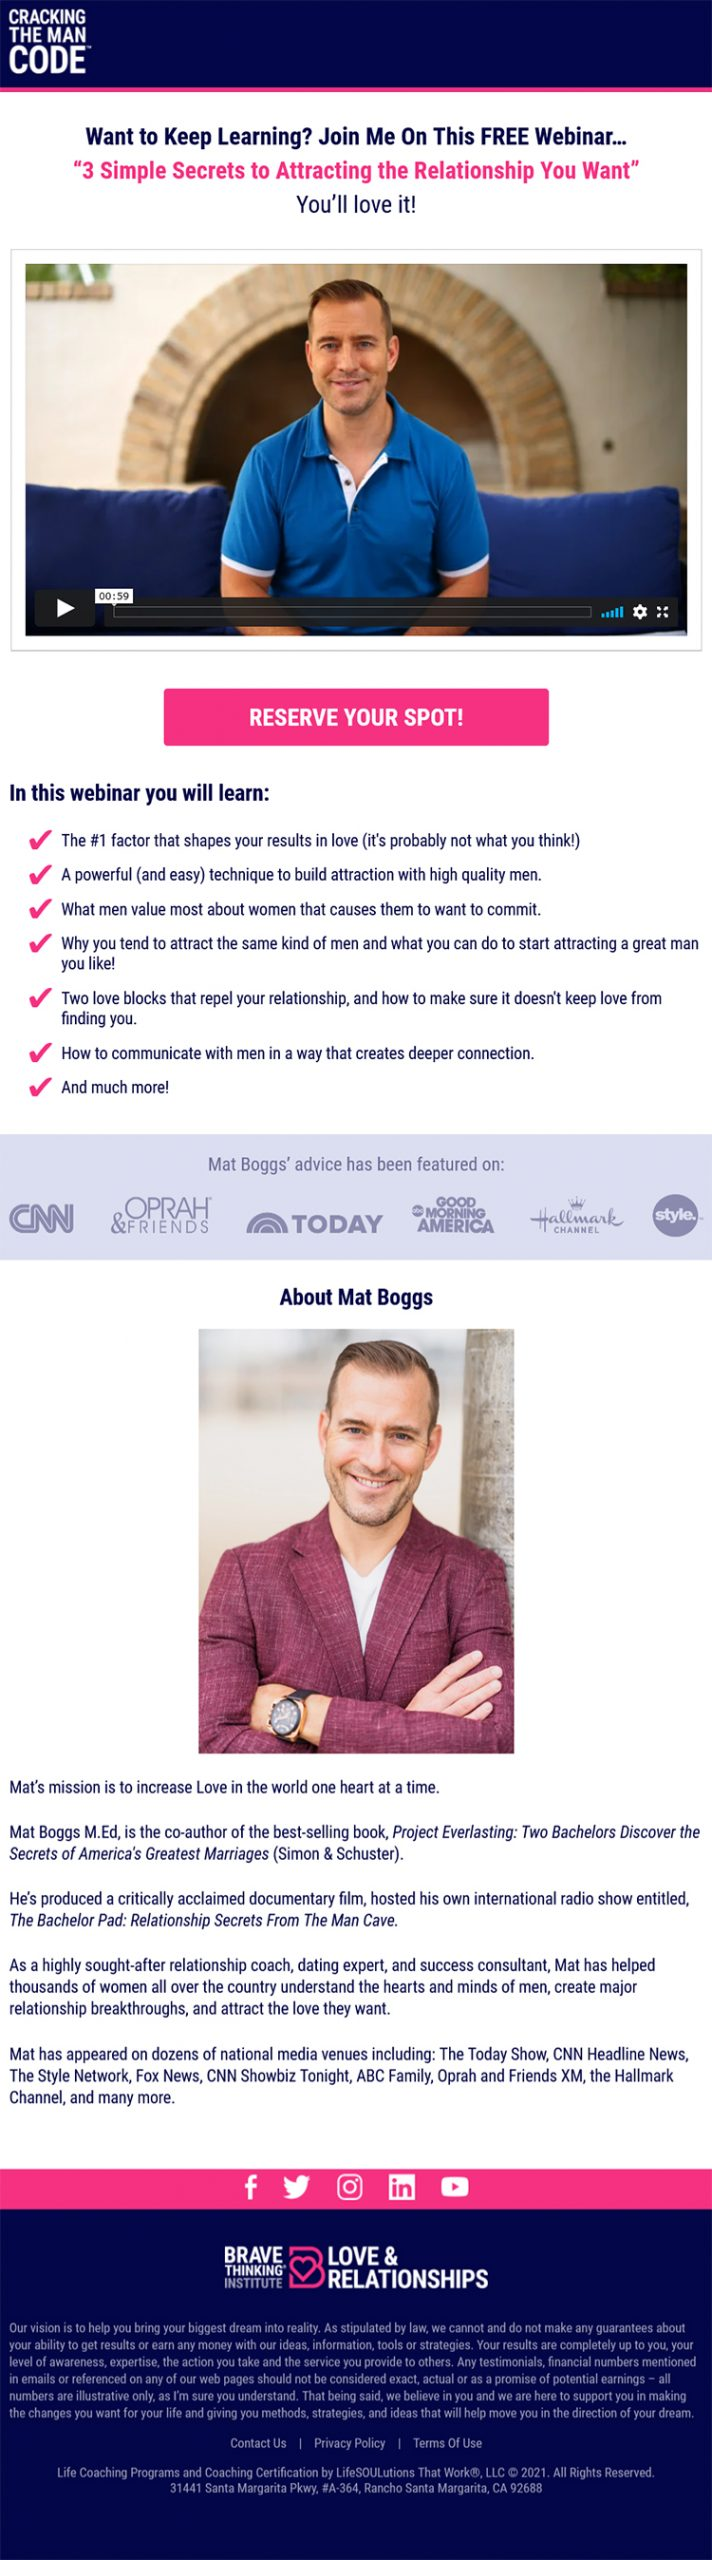 """Mat Boggs' """"15 Phrases That Ignite Desire In Men"""" Guide + """"3 Simple Secrets To Attracting The Relationship You Want"""" Webinar, 15 phrase free guide lead magnet, additional free offer, example."""